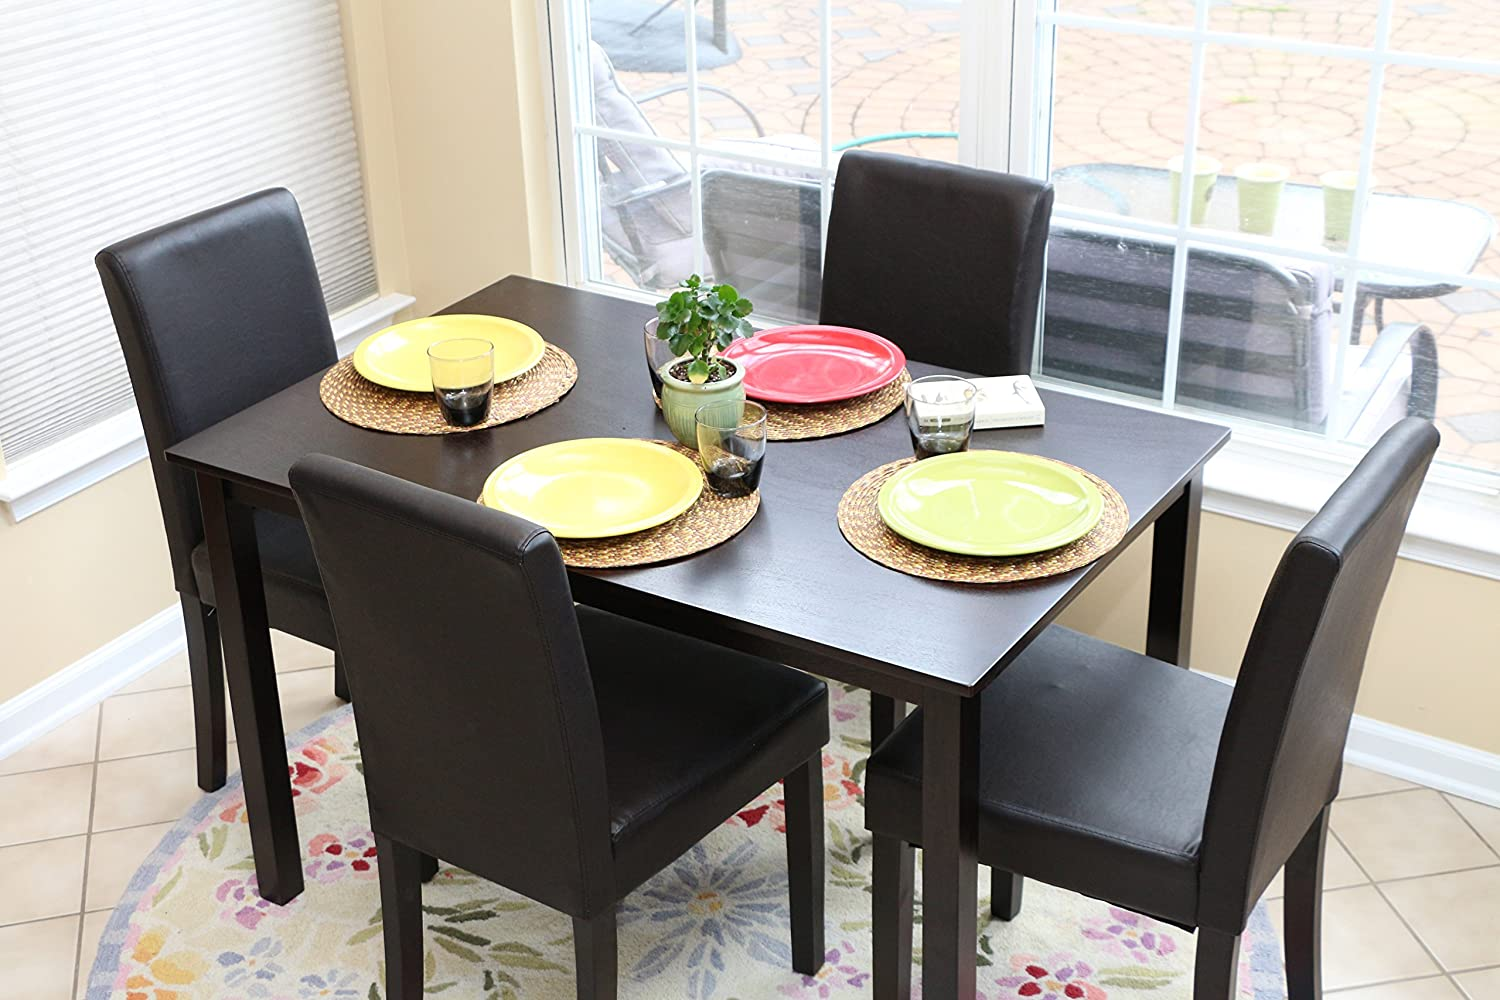 5 PC Black Leather 4 Person Table and Chairs Brown Dining Dinette - Black Parson Chair Superior Importers Company